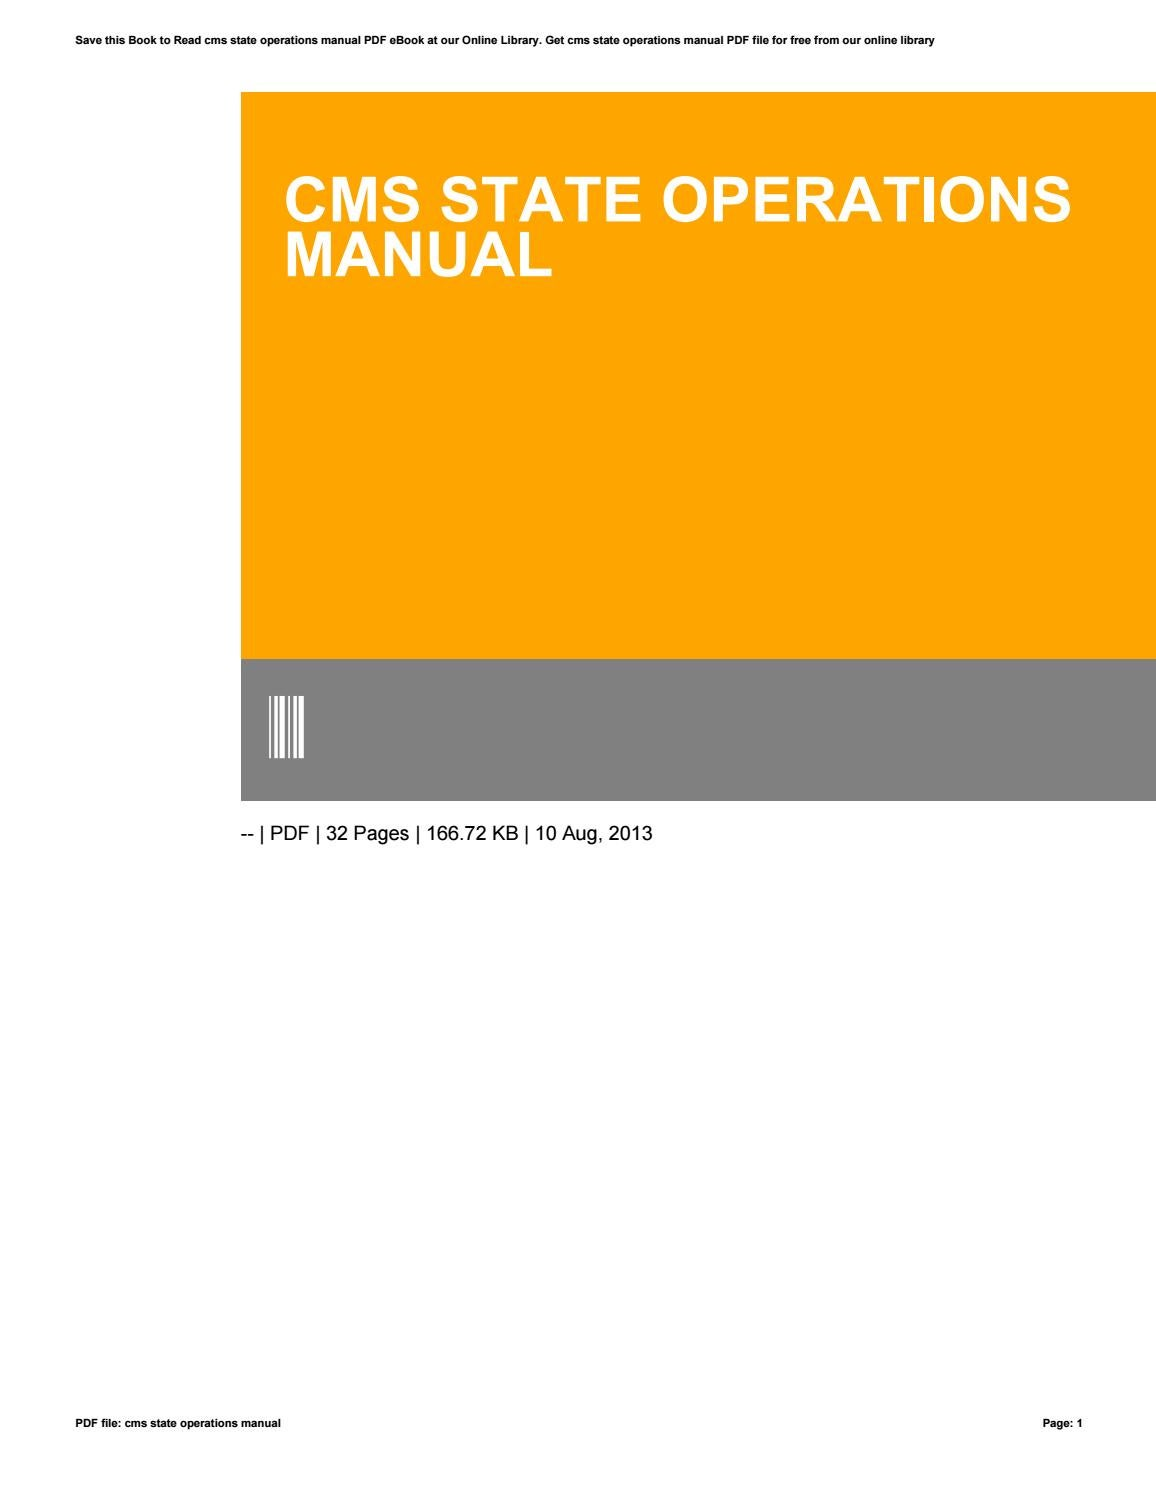 cms state operations manual by aju8 issuu rh issuu com cms state operations manual 2018 hospital cms state operations manual 2018 hospital